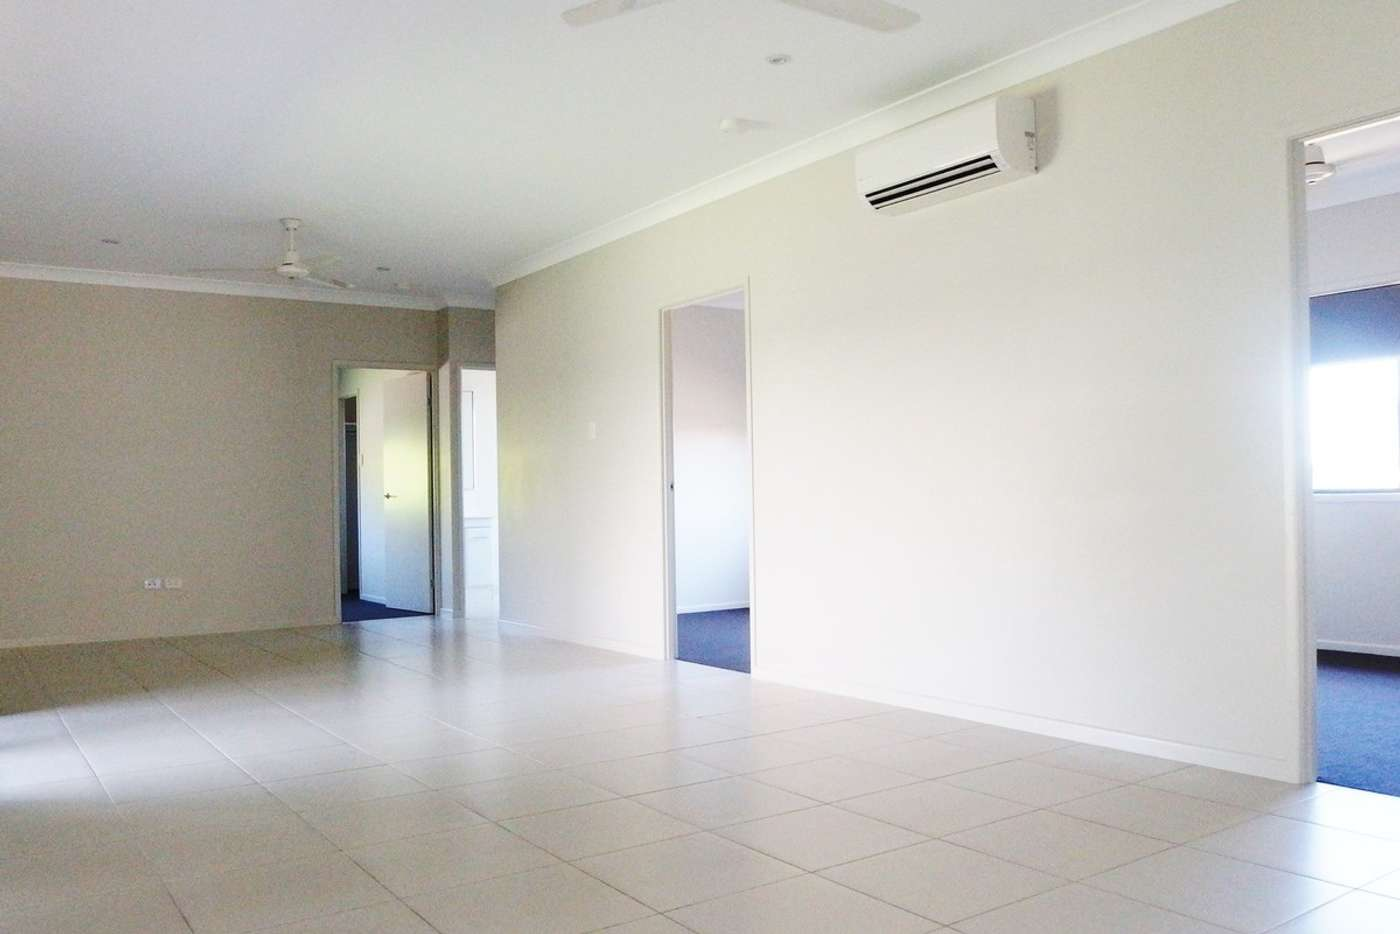 Sixth view of Homely house listing, 32 Elford Place, Mount Louisa QLD 4814